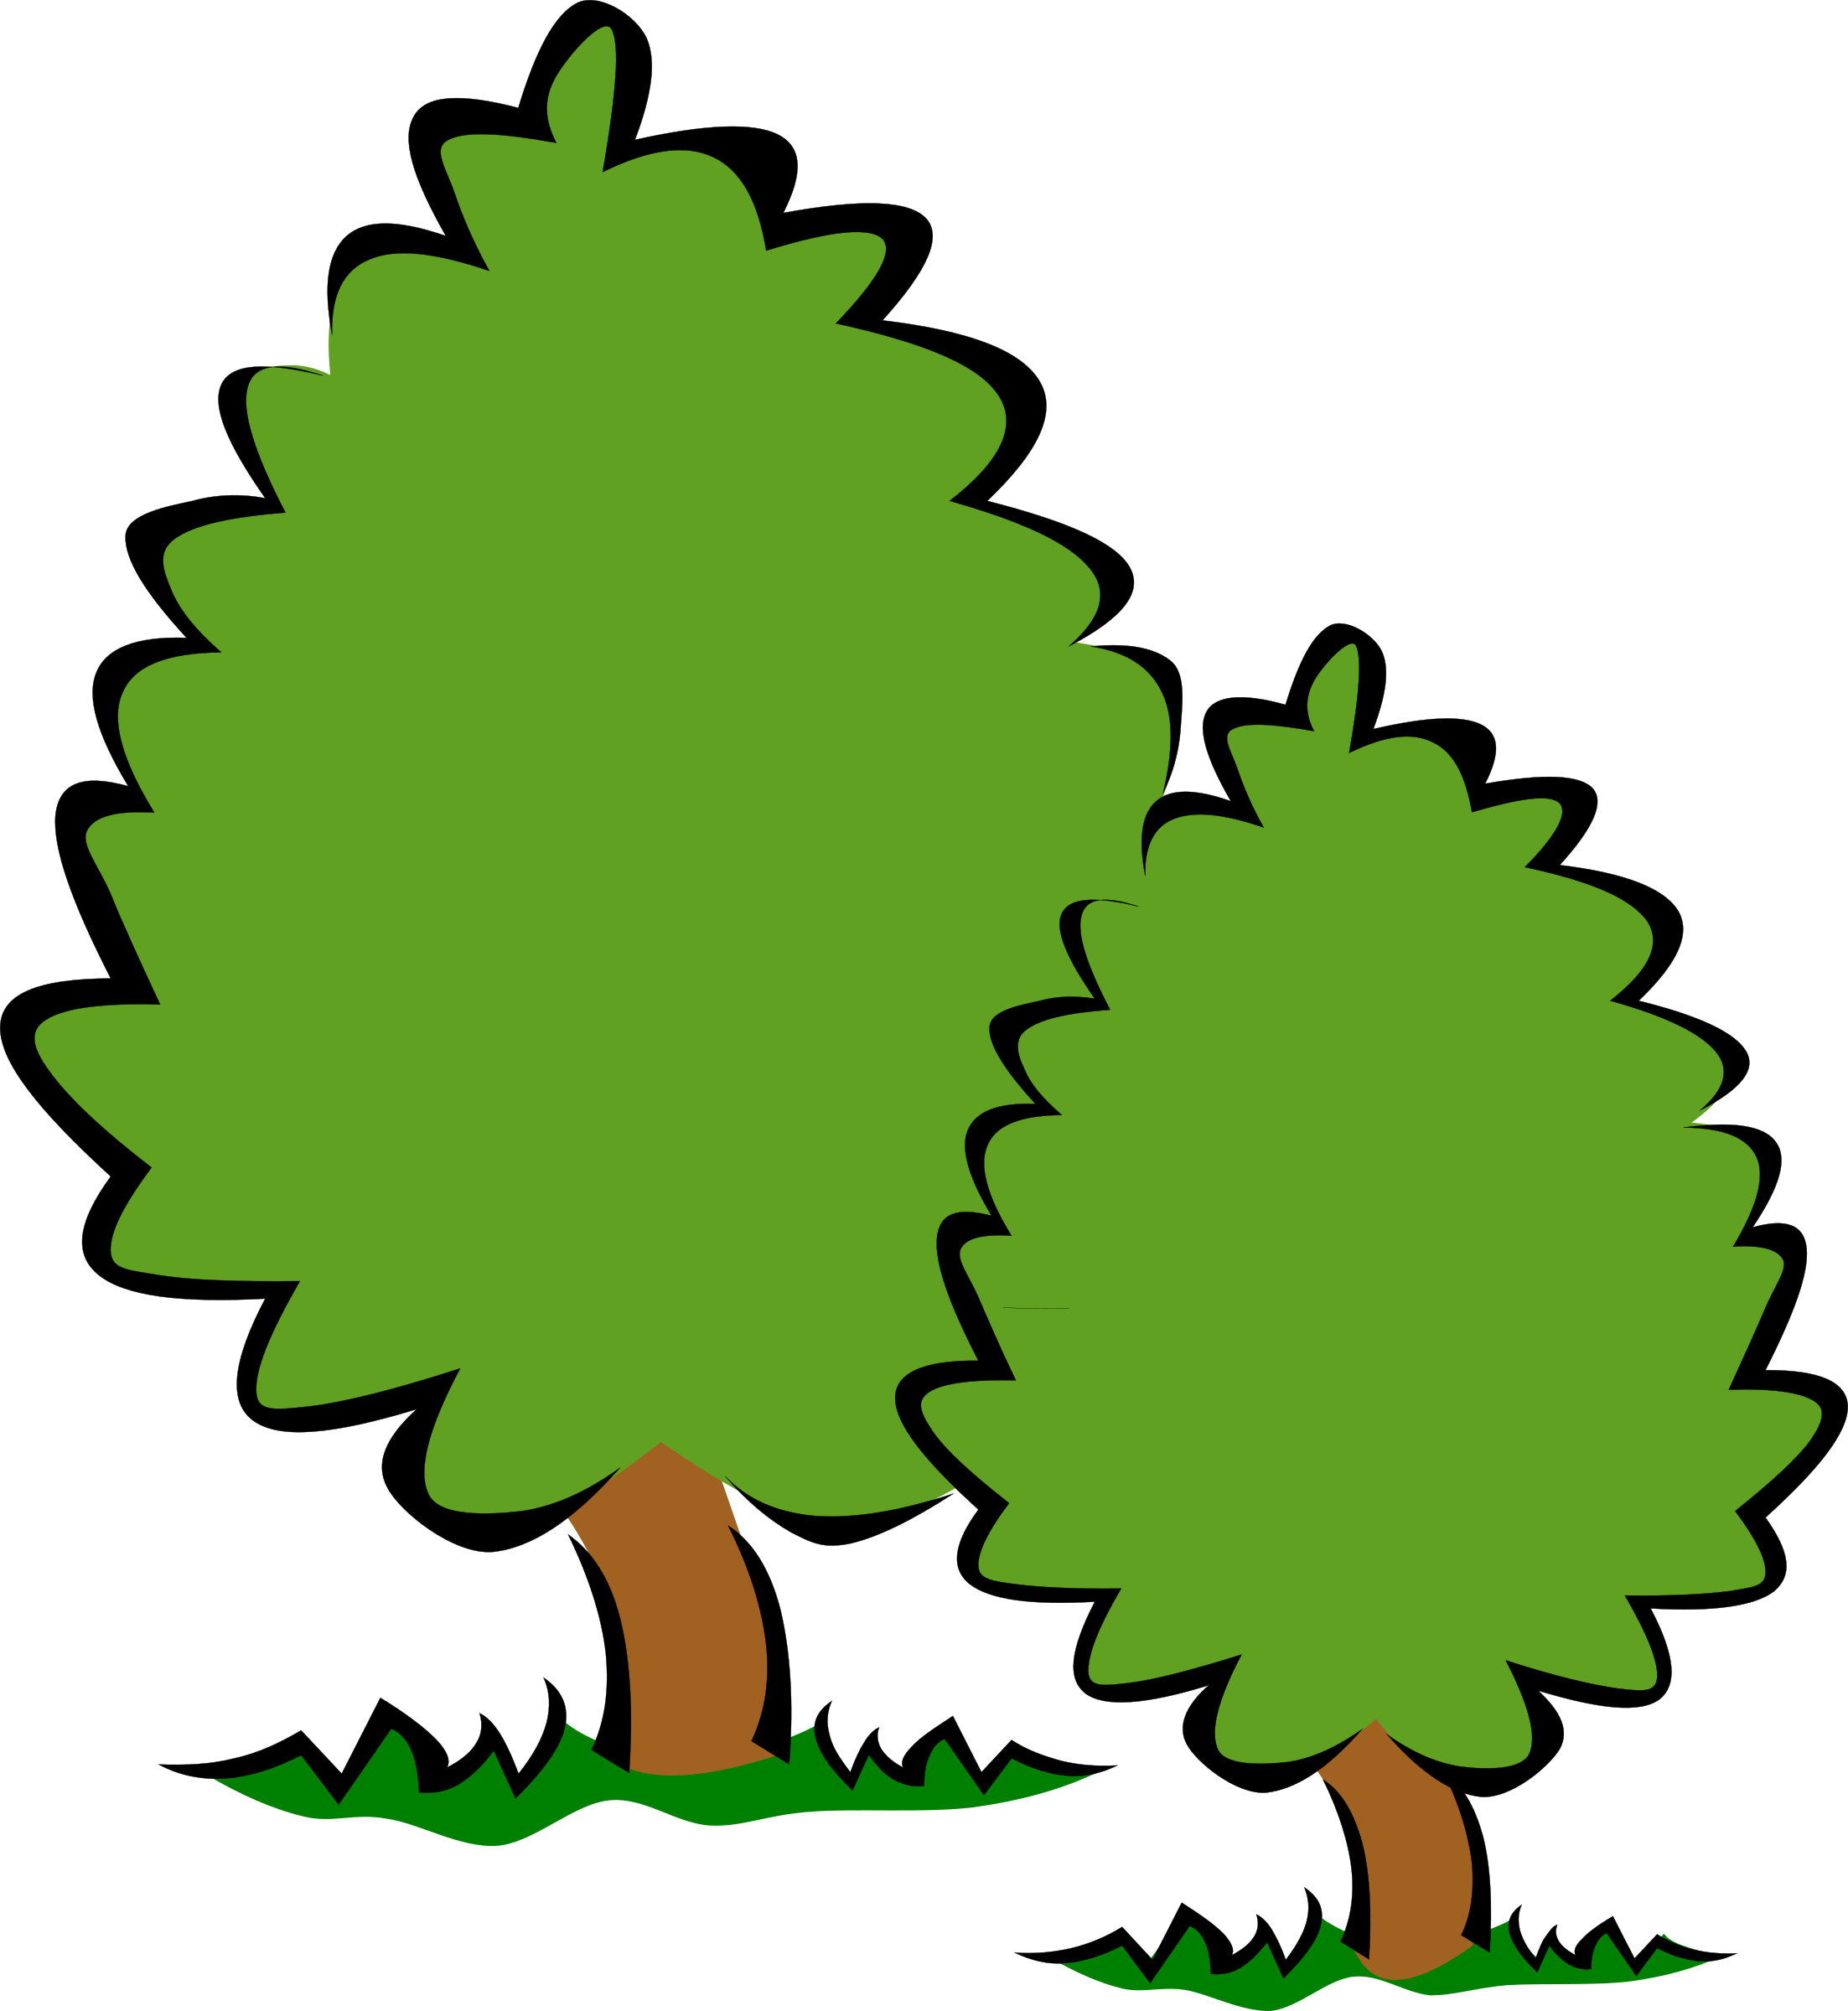 Tree clipart transparent background Bushes Clipground and trees Trees